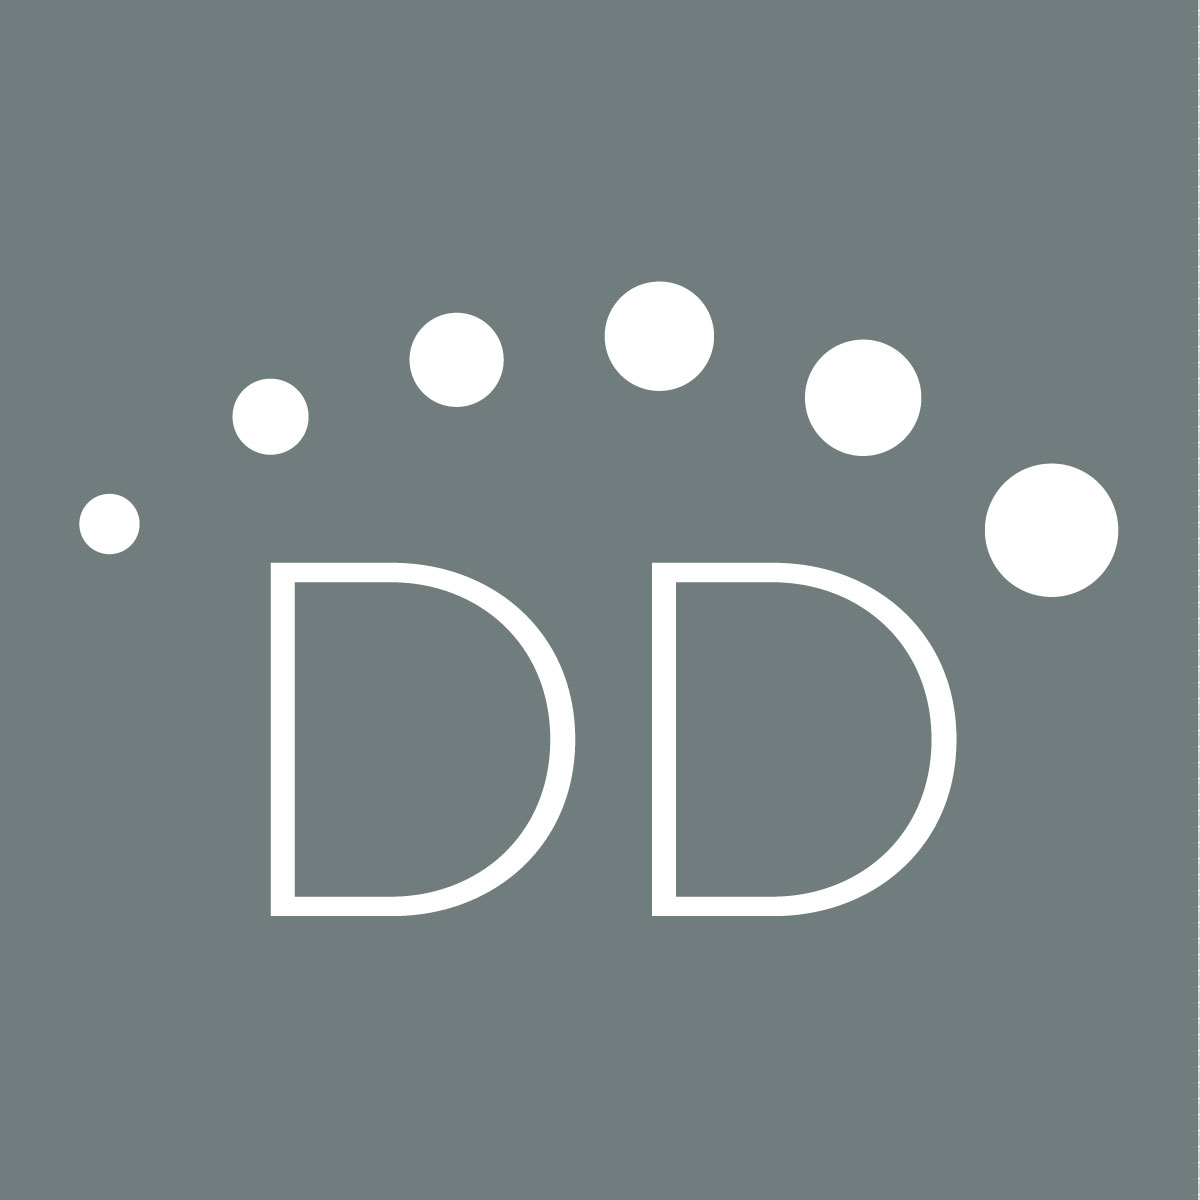 DesignDot-Badge---Reverse-on-Gray.jpg